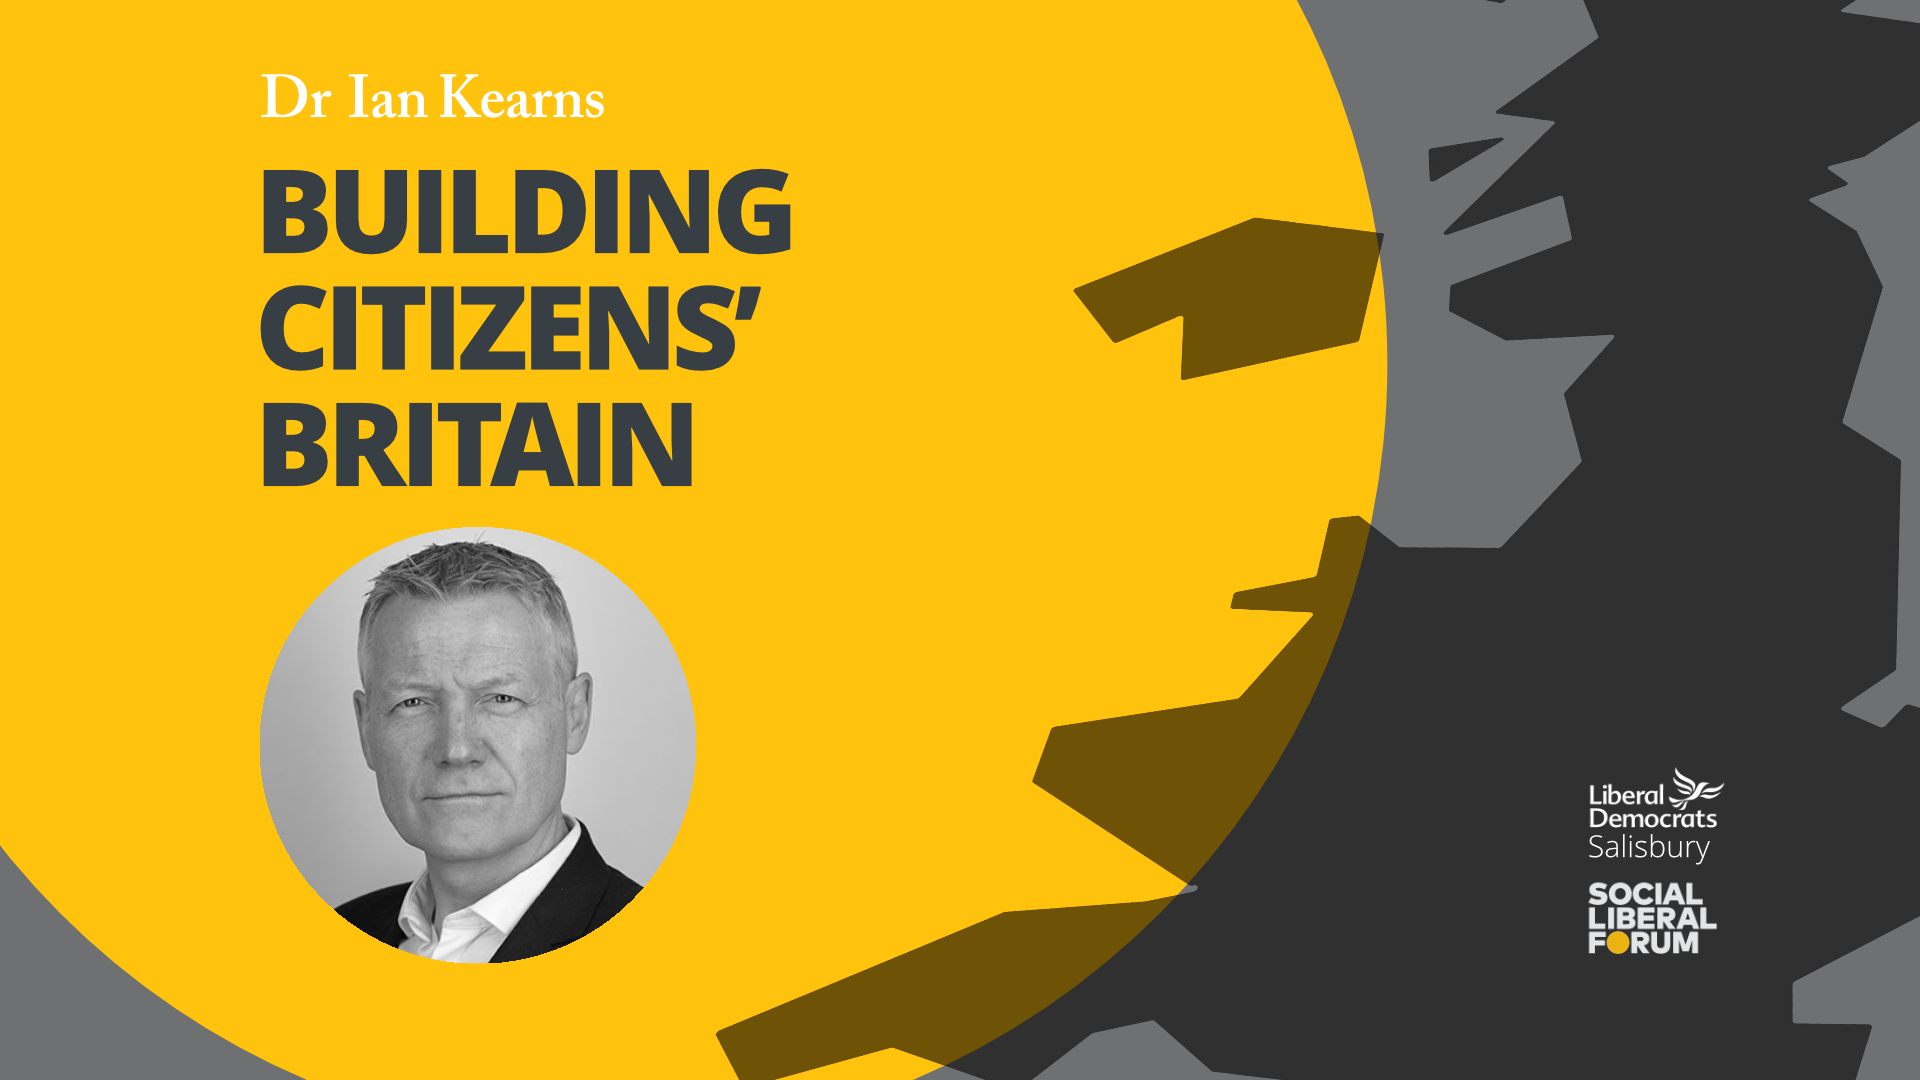 Building Citizens' Britain with Dr Ian Kearns